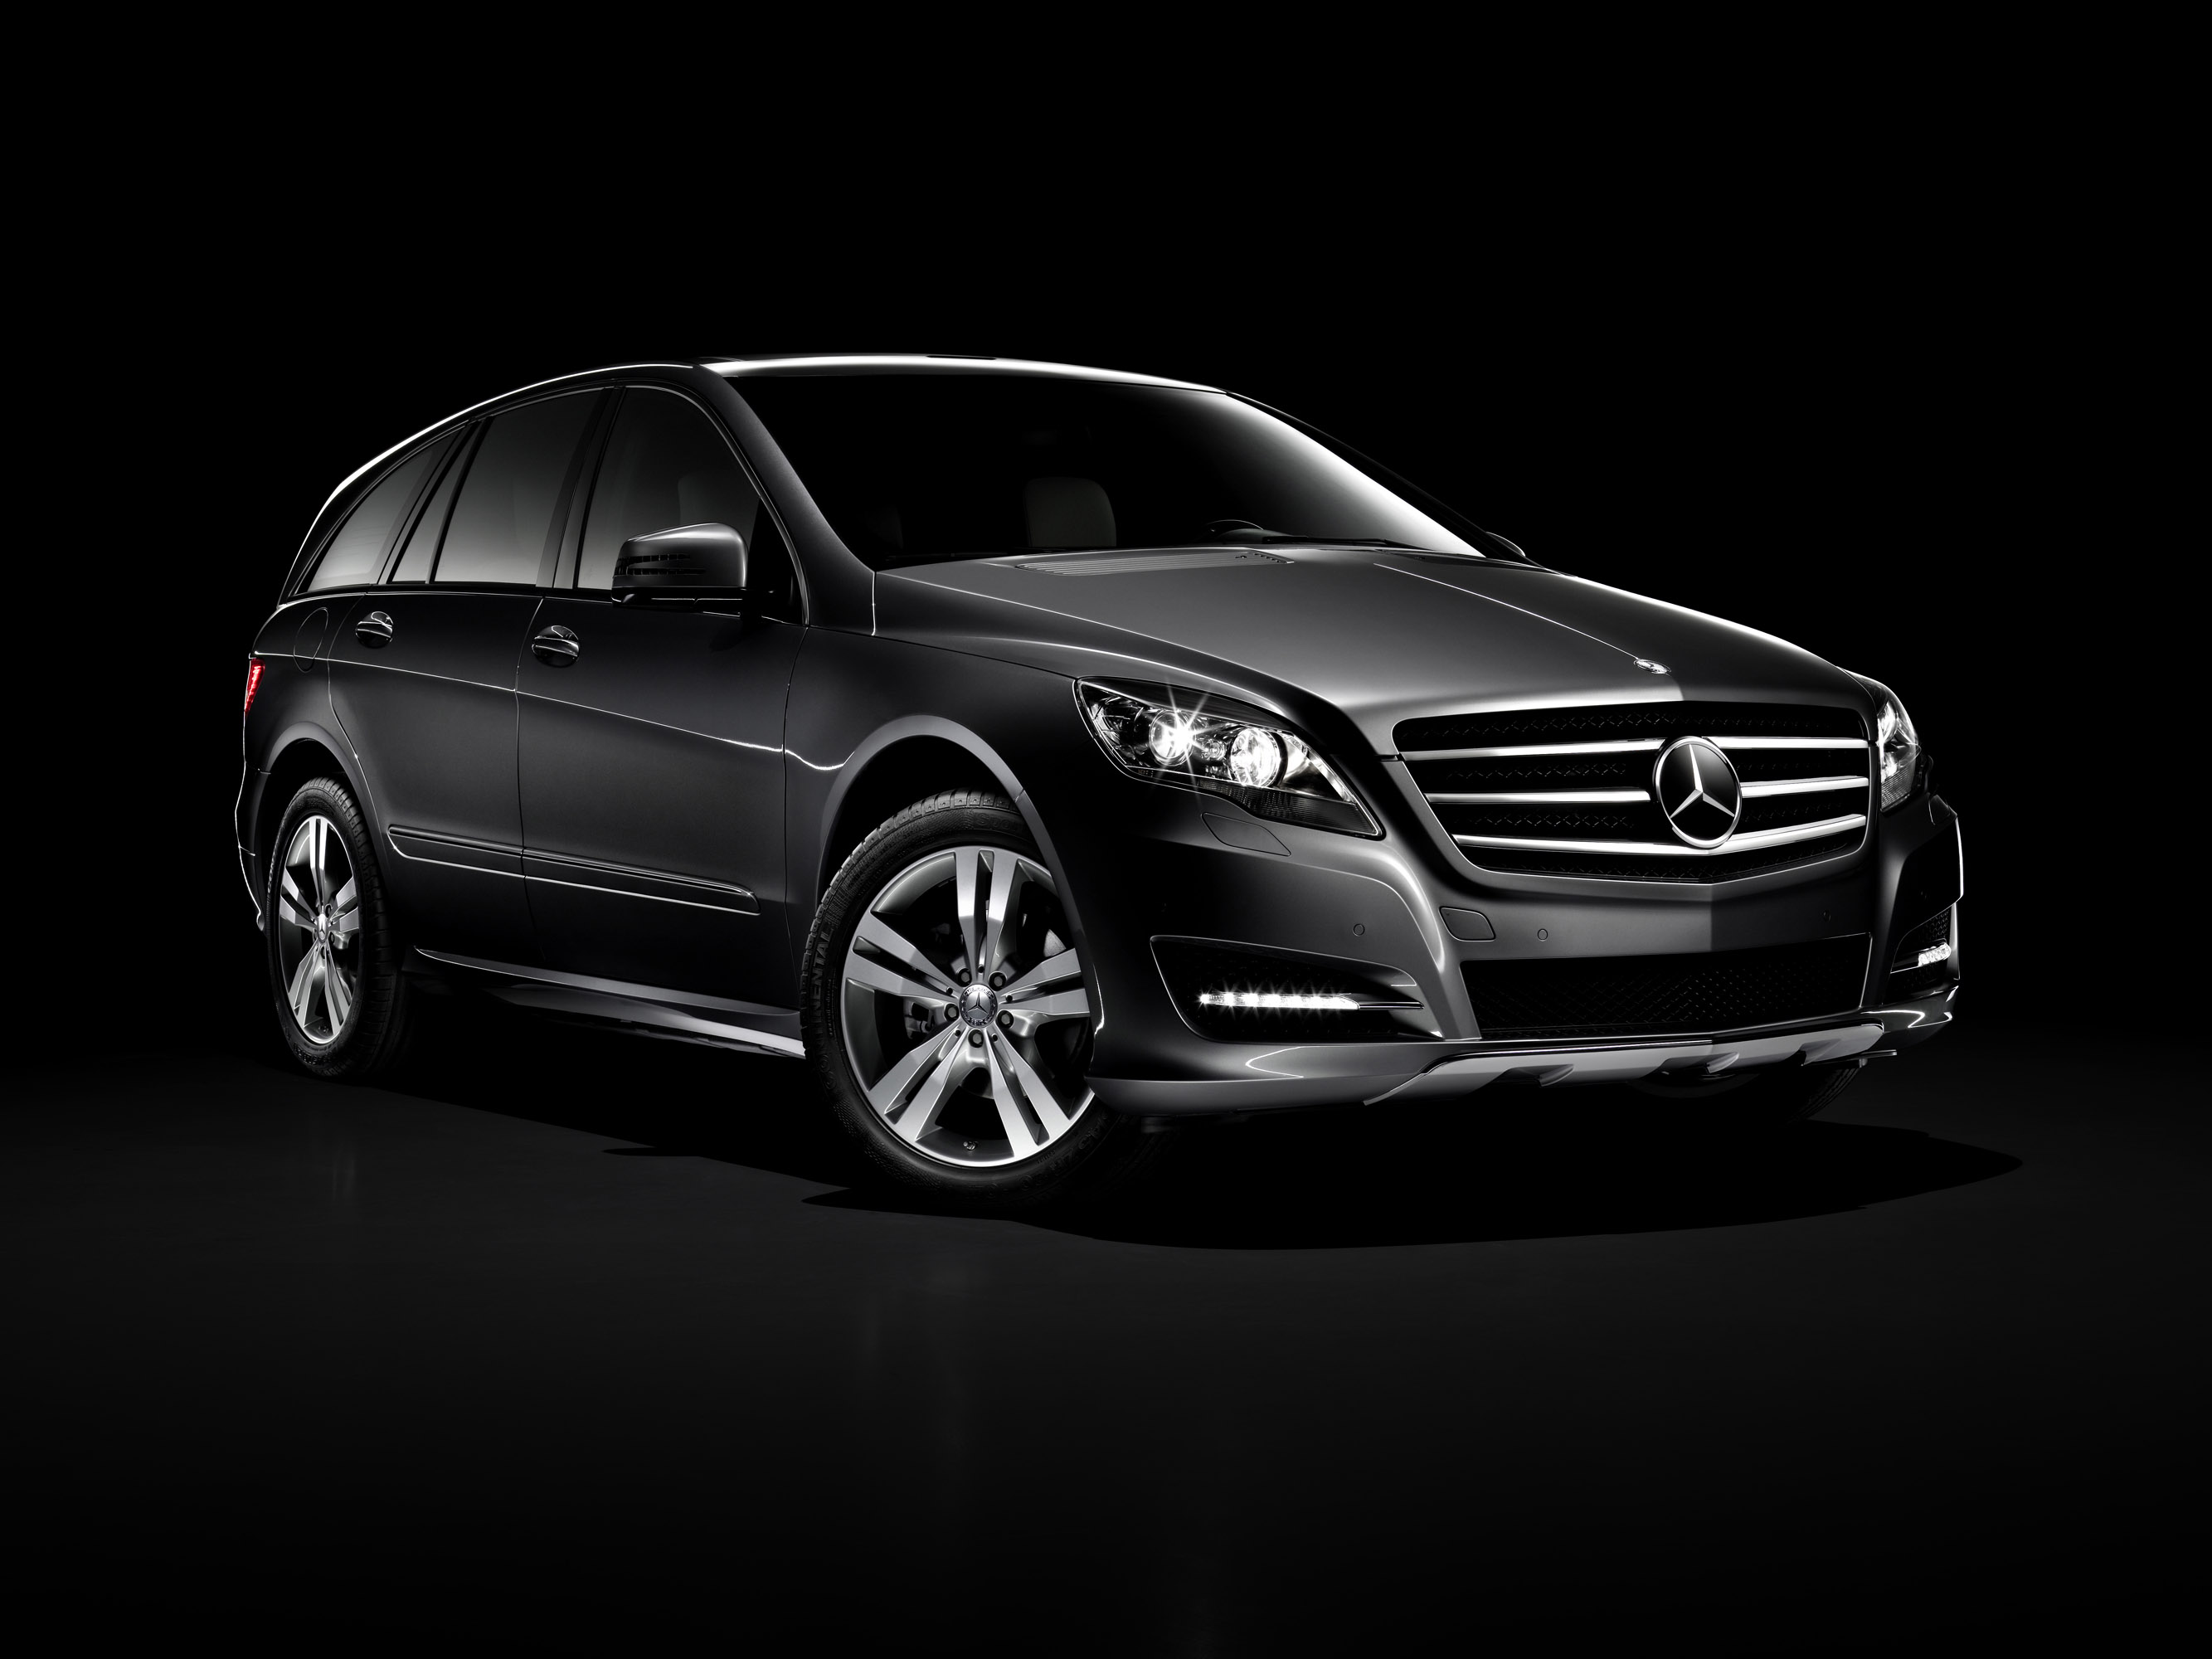 Mercedes-Benz R-Class photo #1